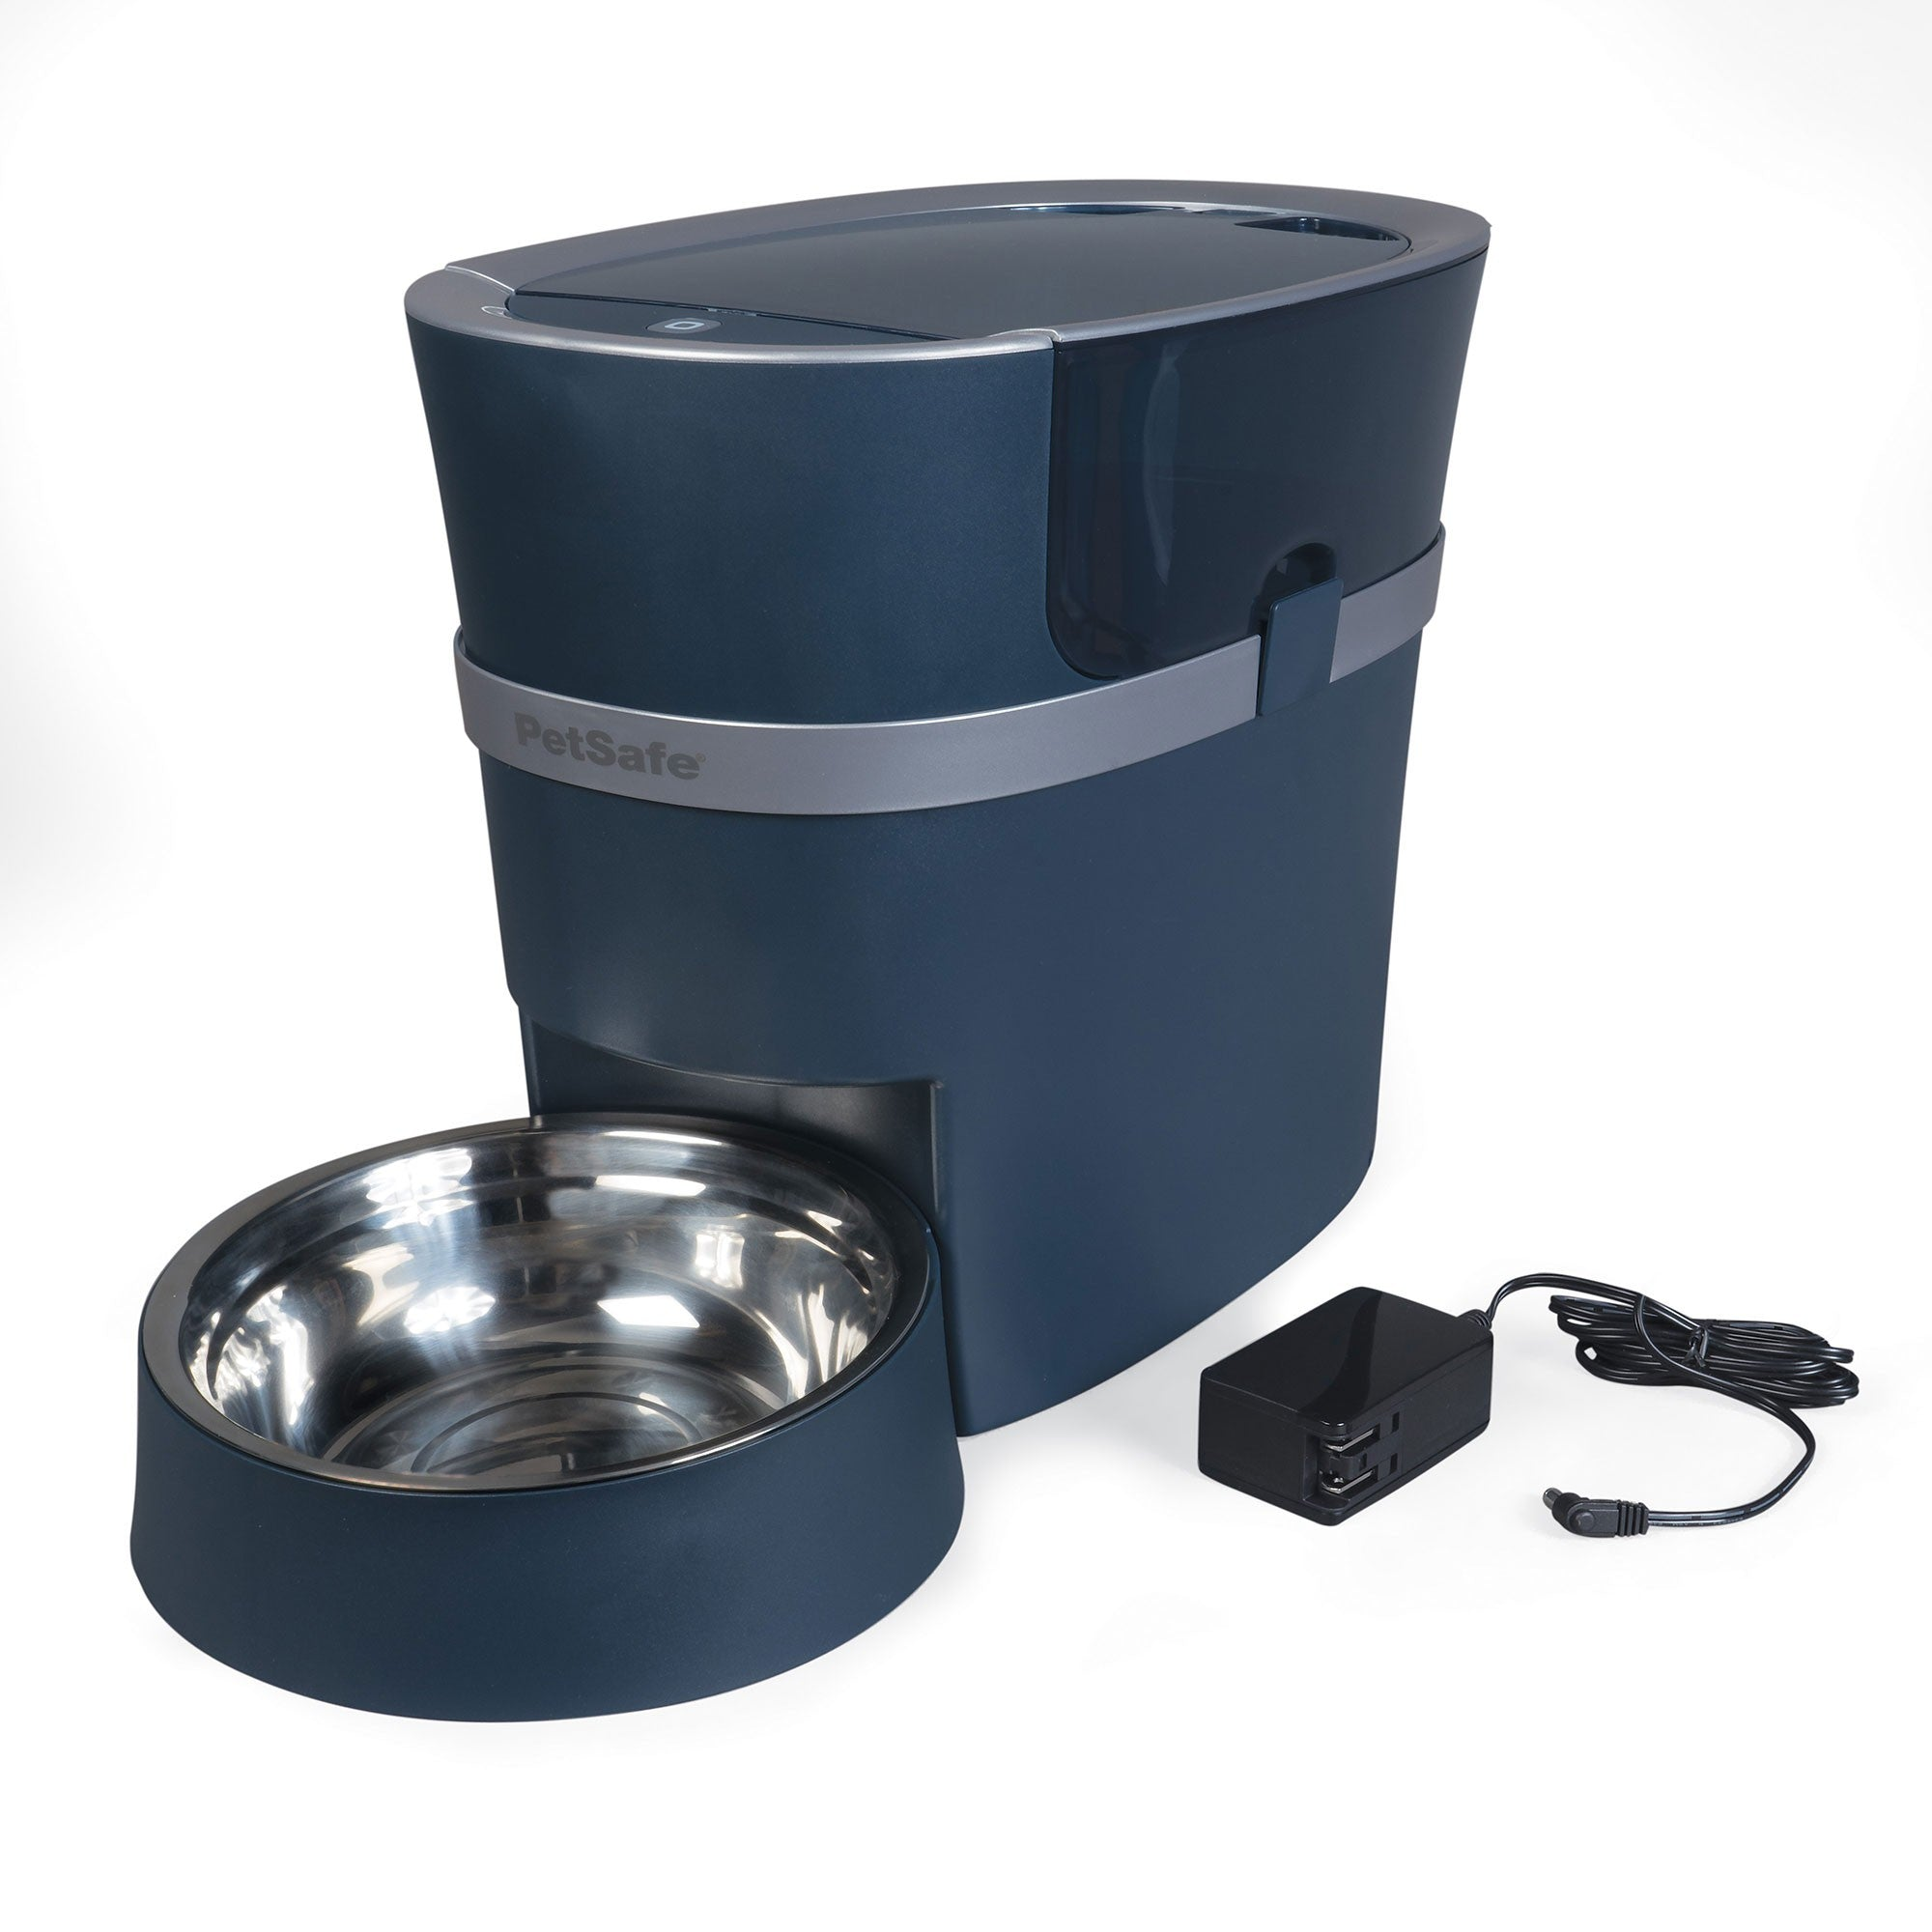 meal two same petsafe shipping p day with cfm baxterboo six automatic pet feeder